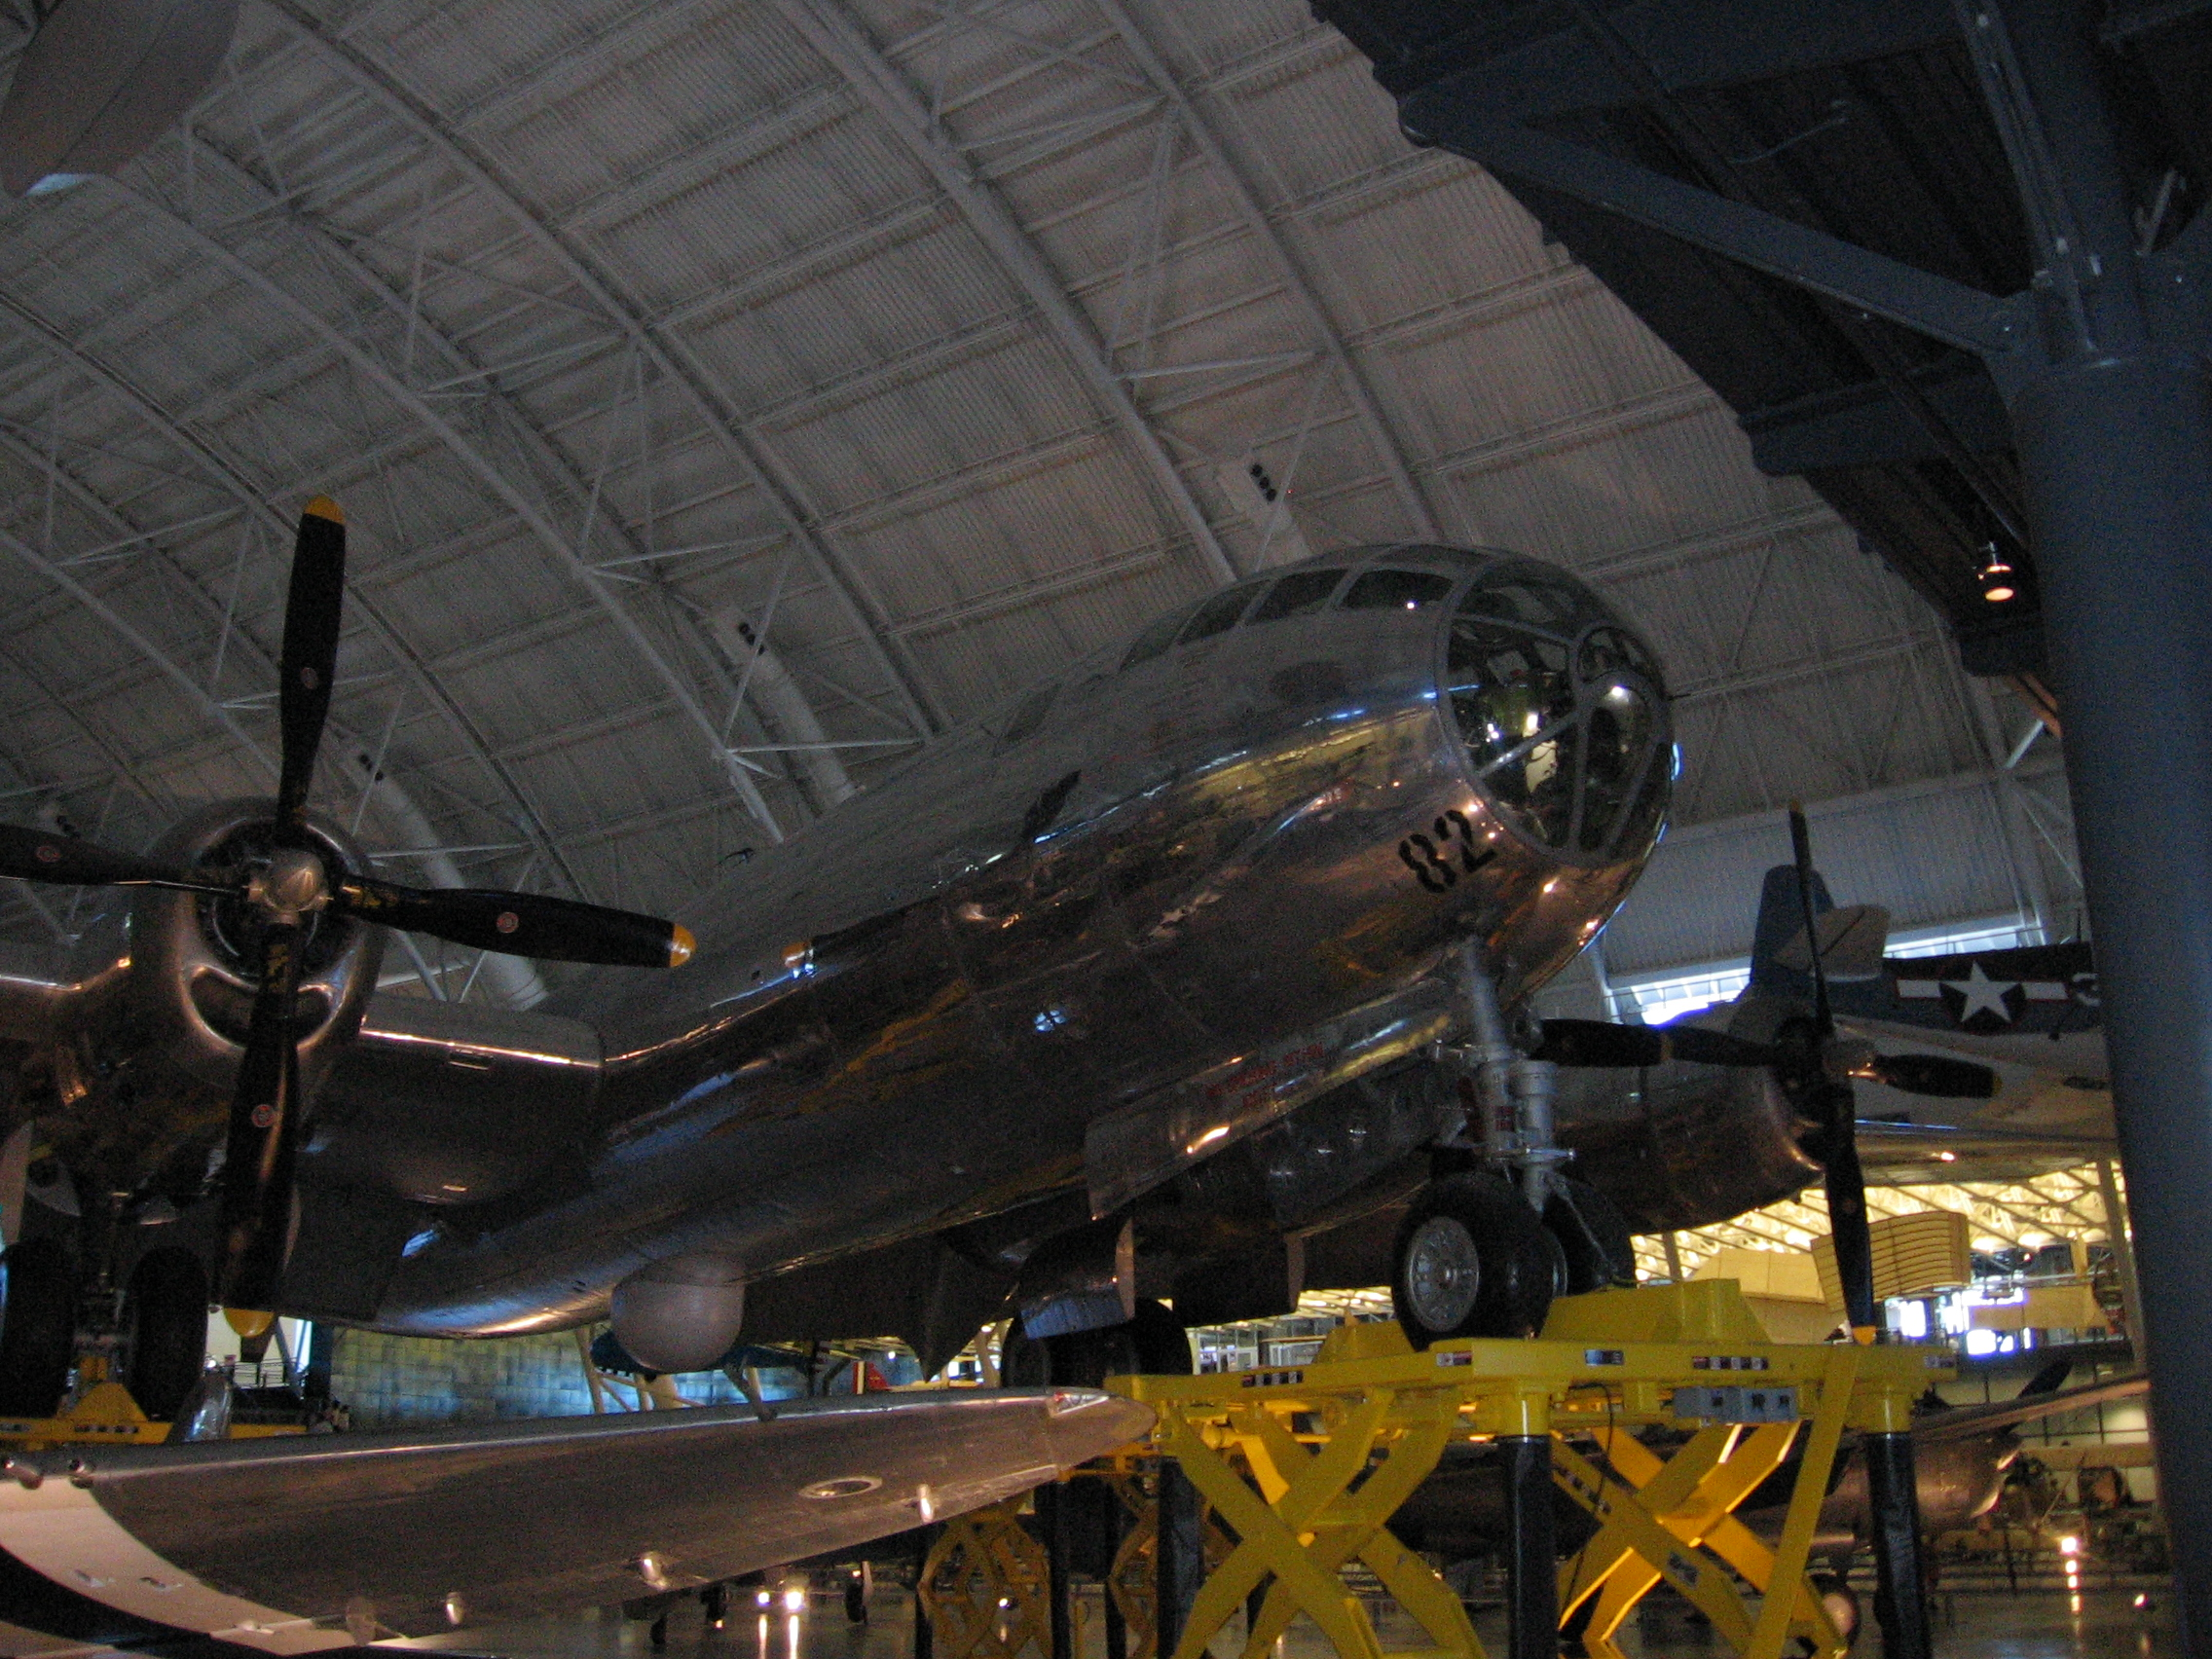 Steven F. Udvar-Hazy Center (dio drugi)